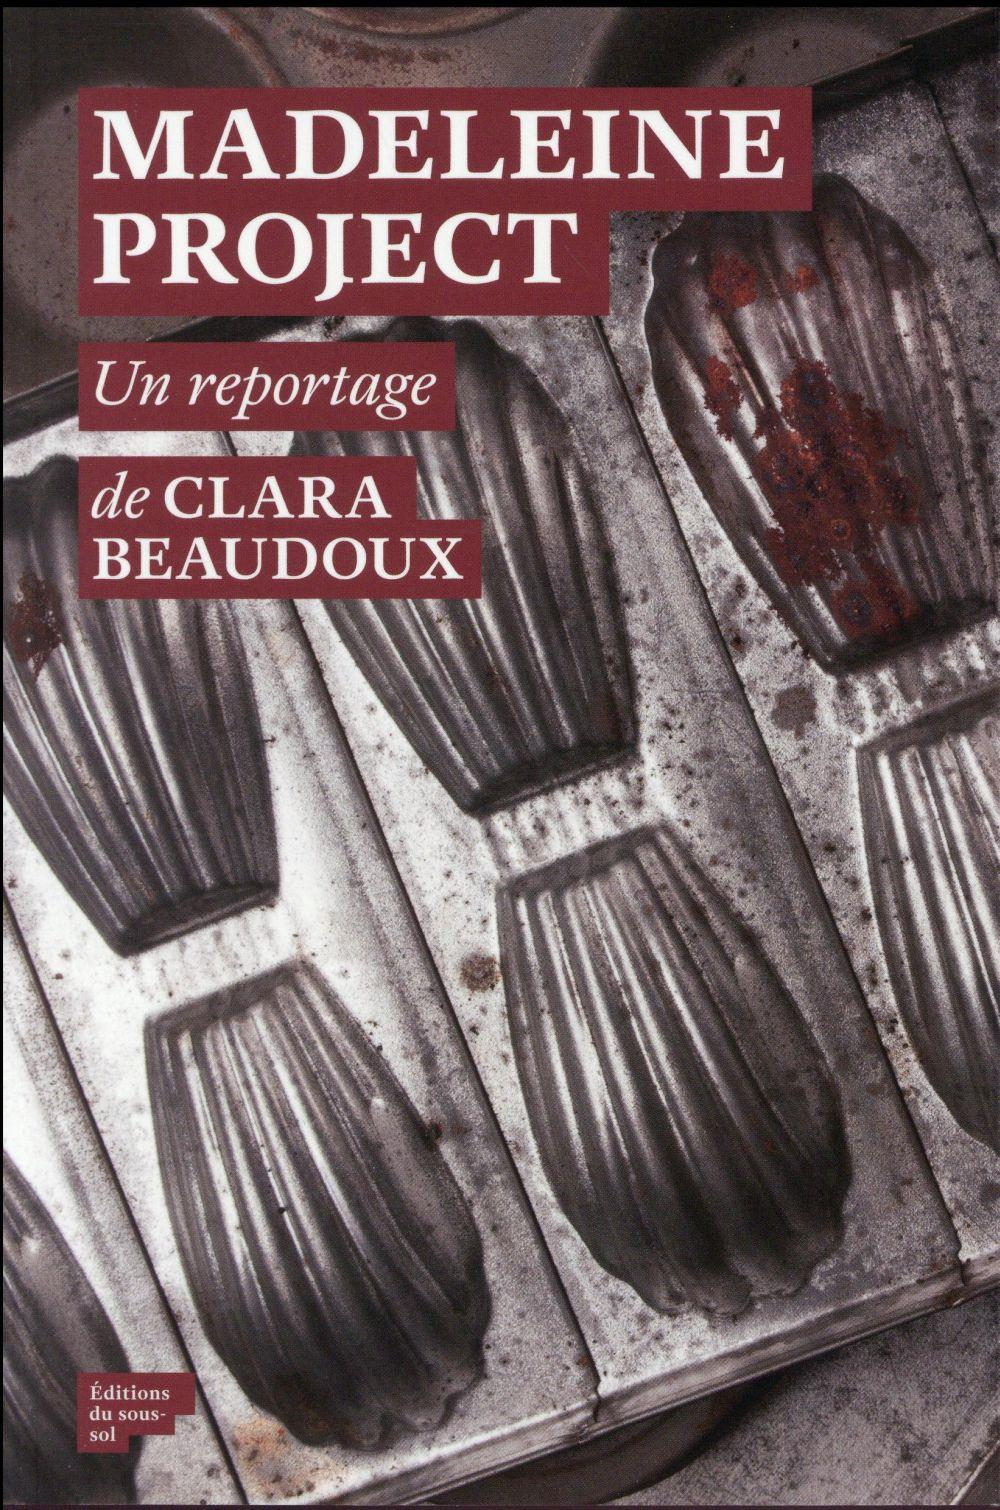 Madeleine project  - Clara Beaudoux